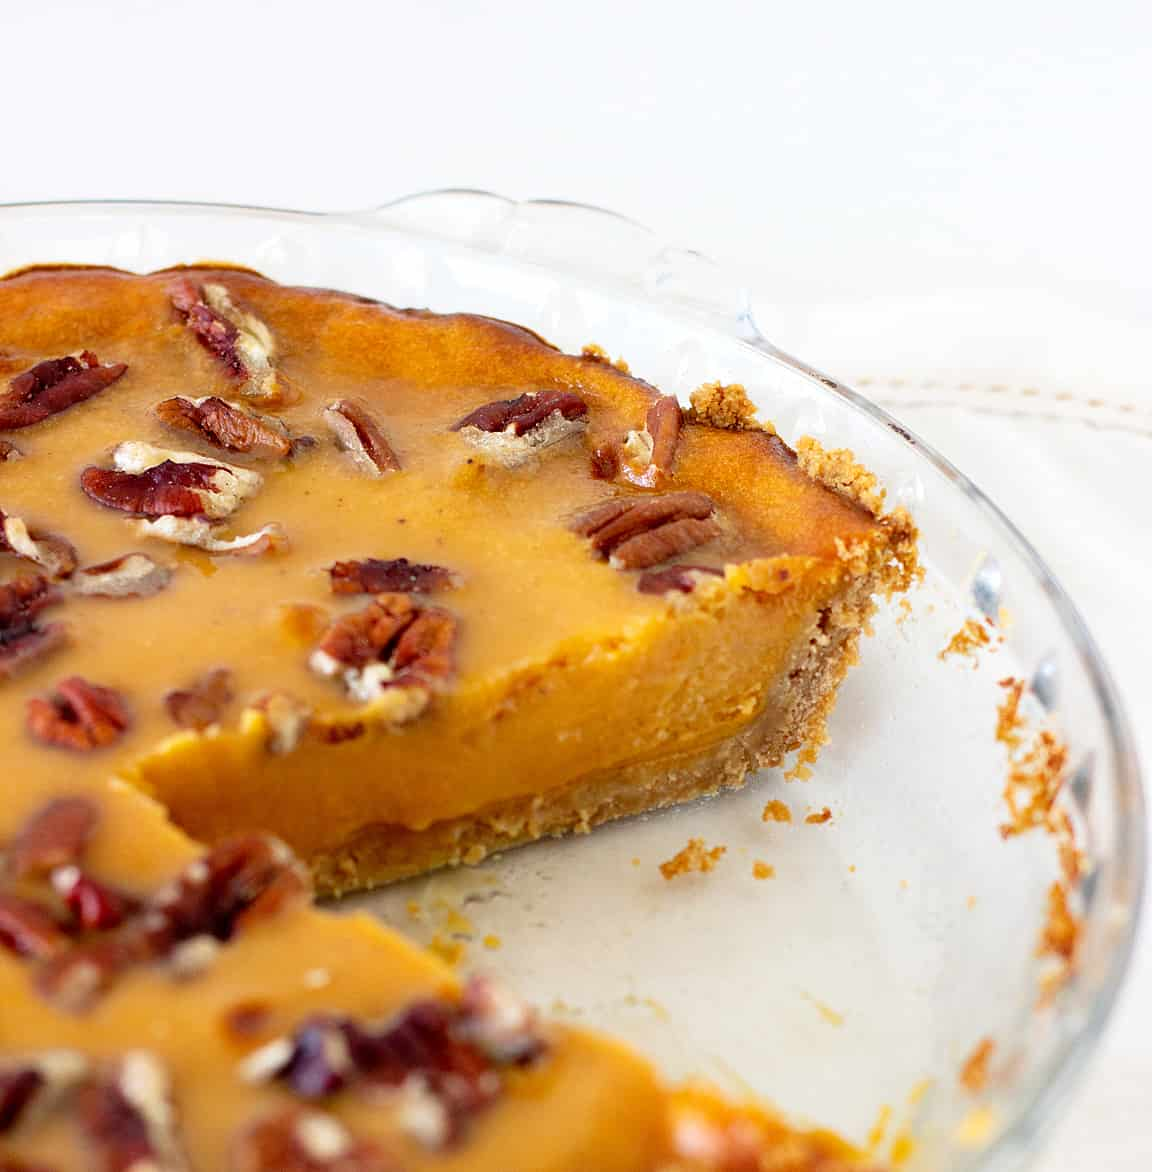 Partial view of cut sweet potato pie in glass pie dish, white surface